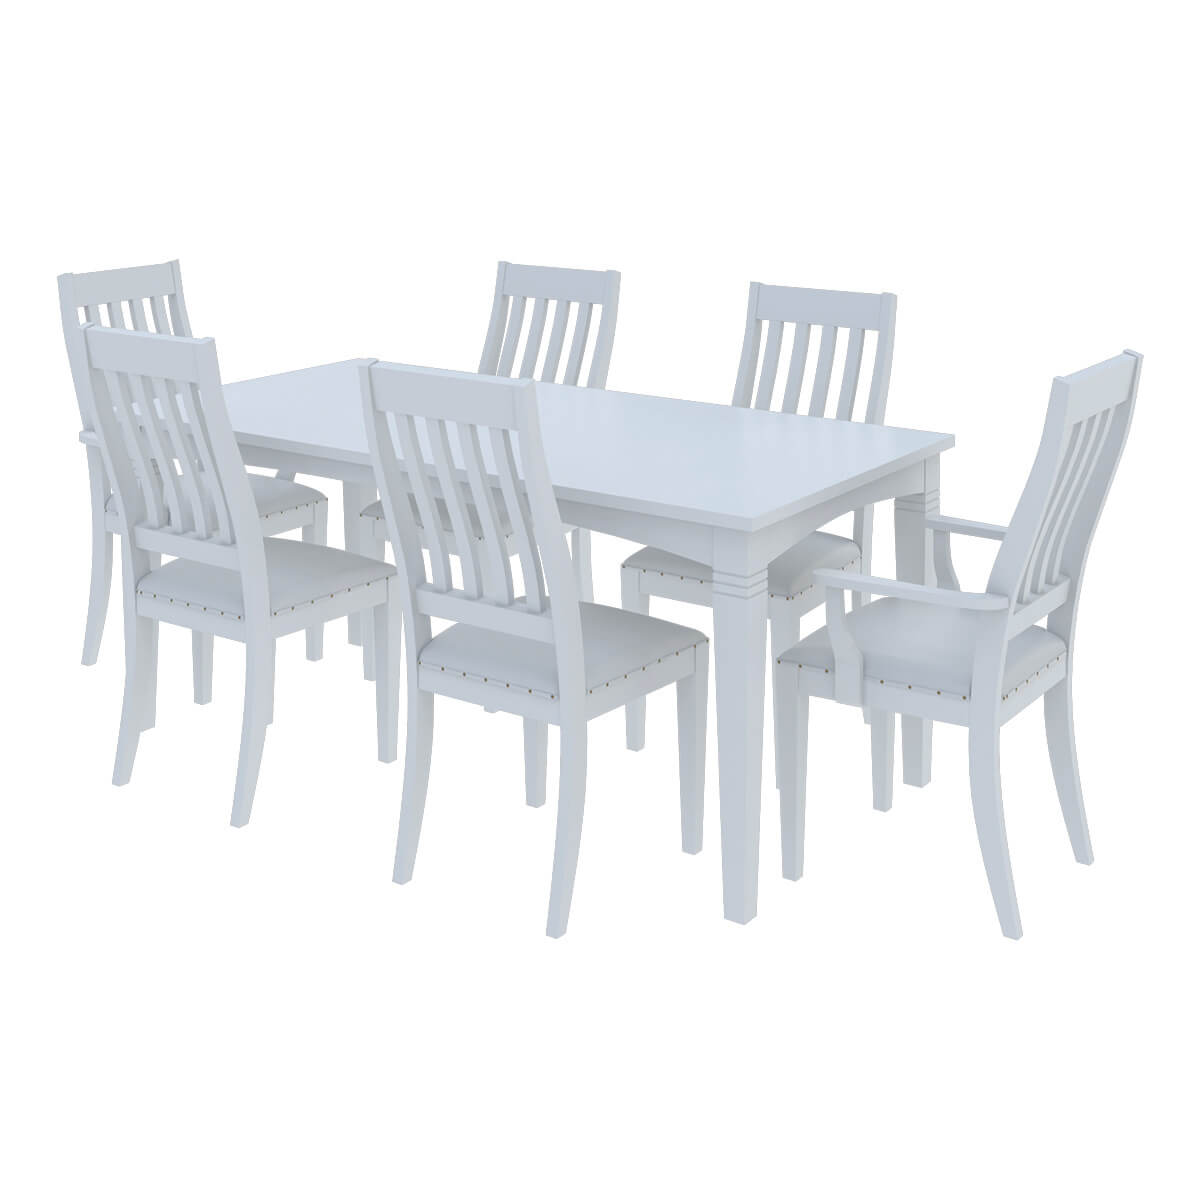 White Wooden Dining Chairs Ennis Solid White Mahogany Wood Dining Table Chair Set